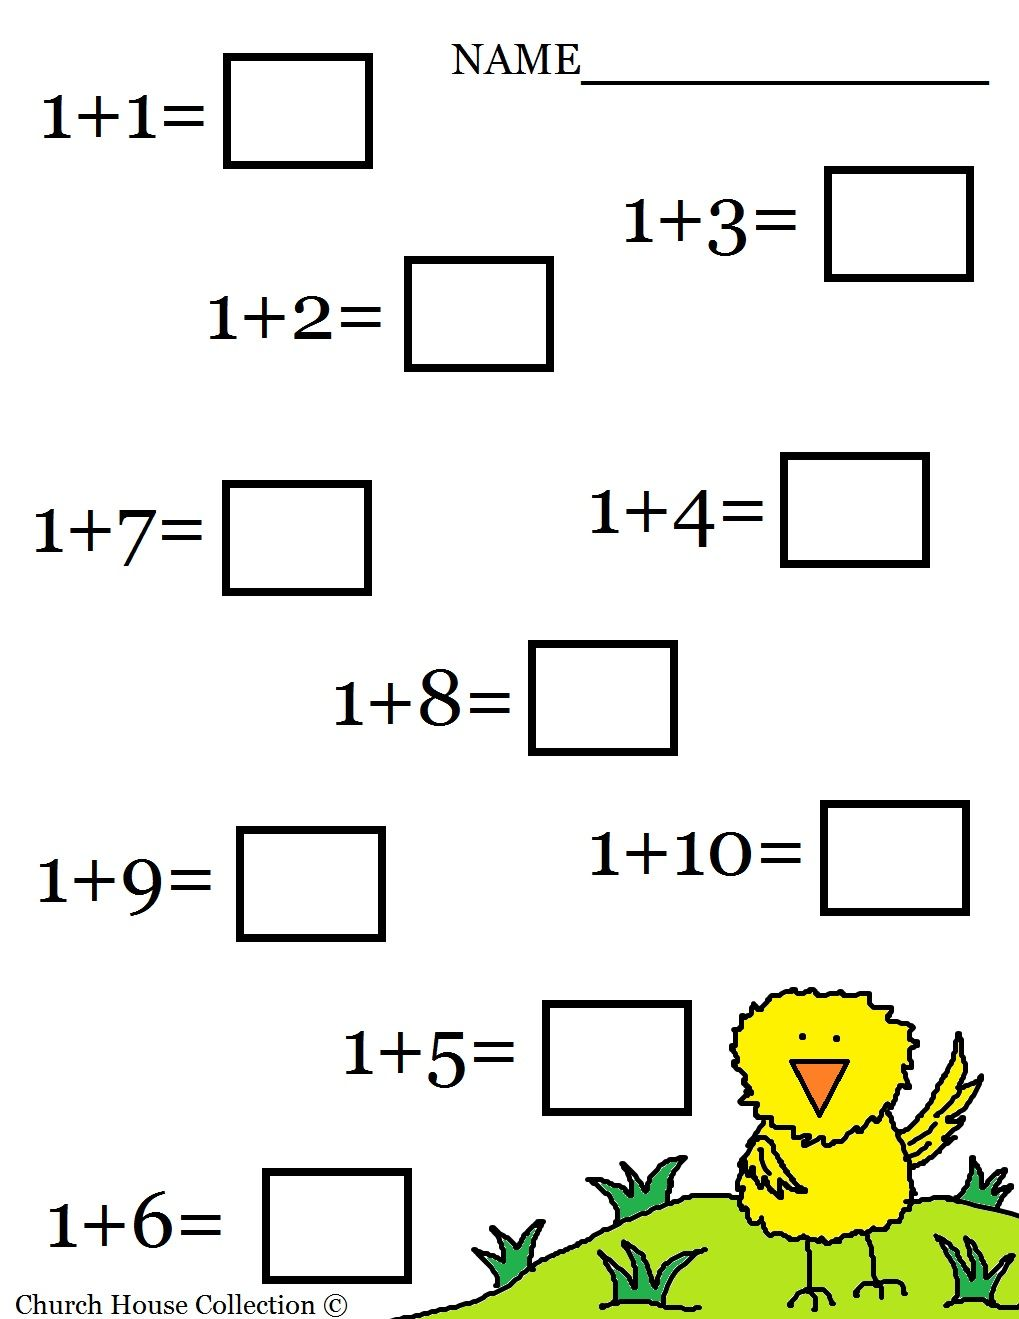 Aldiablosus  Sweet  Images About Worksheets  Math On Pinterest  Math Sheets  With Outstanding  Images About Worksheets  Math On Pinterest  Math Sheets Math Worksheets For Kindergarten And Simple Addition With Amusing Addition And Subtraction Worksheets Also Printable Math Worksheets In Addition St Grade Worksheets And W  Worksheet As Well As Third Grade Math Worksheets Additionally Nd Grade Math Worksheets From Pinterestcom With Aldiablosus  Outstanding  Images About Worksheets  Math On Pinterest  Math Sheets  With Amusing  Images About Worksheets  Math On Pinterest  Math Sheets Math Worksheets For Kindergarten And Simple Addition And Sweet Addition And Subtraction Worksheets Also Printable Math Worksheets In Addition St Grade Worksheets From Pinterestcom